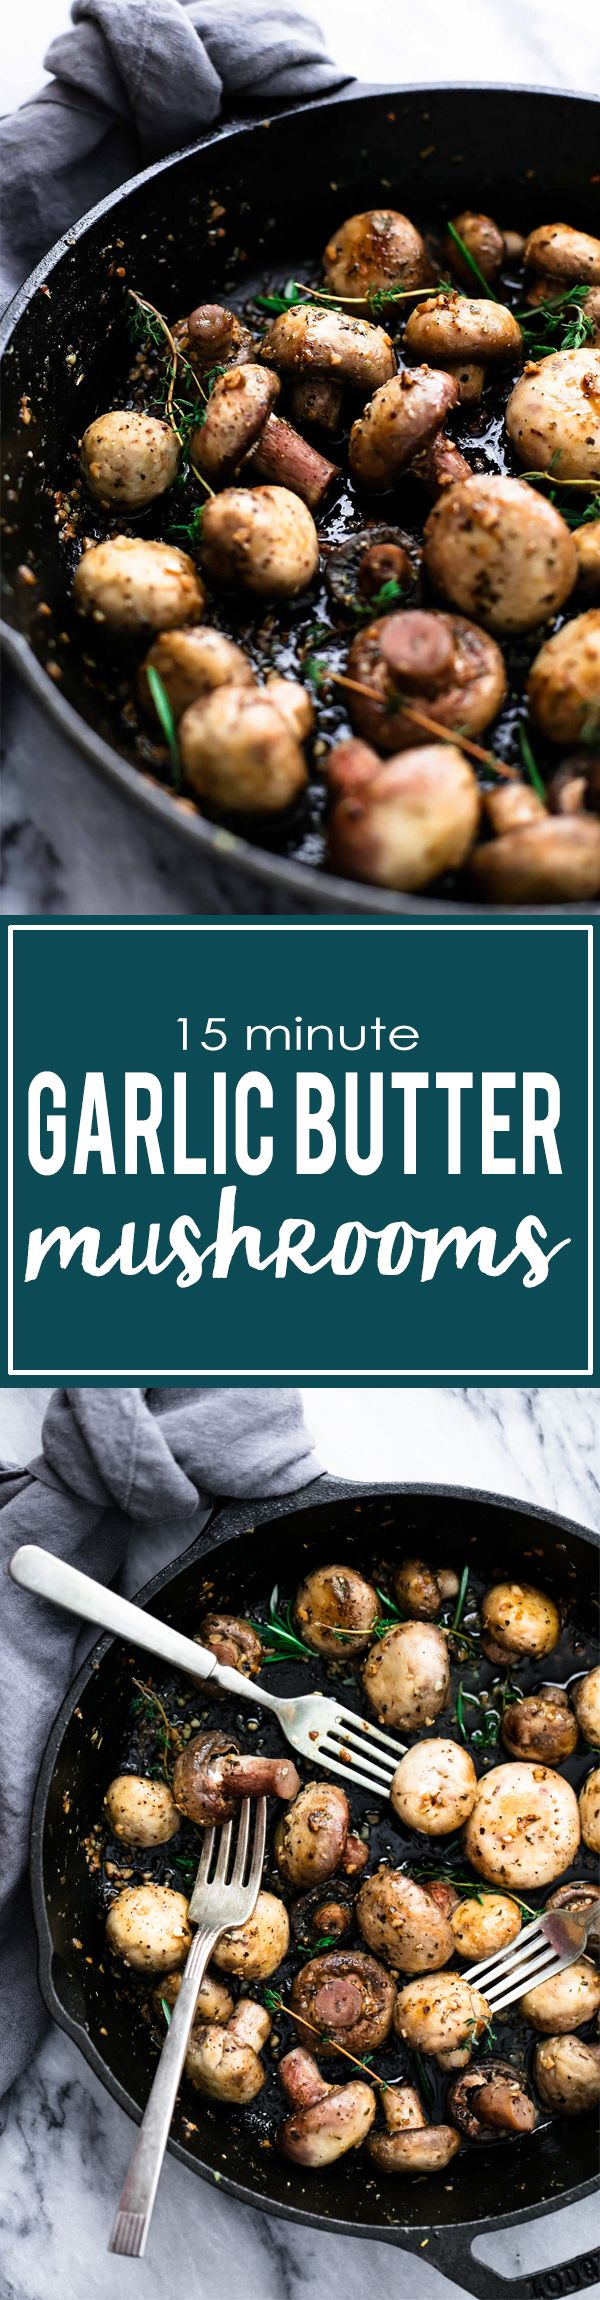 Easy 15 Minute Garlic Butter & Herb Mushrooms | Creme de la Crumb